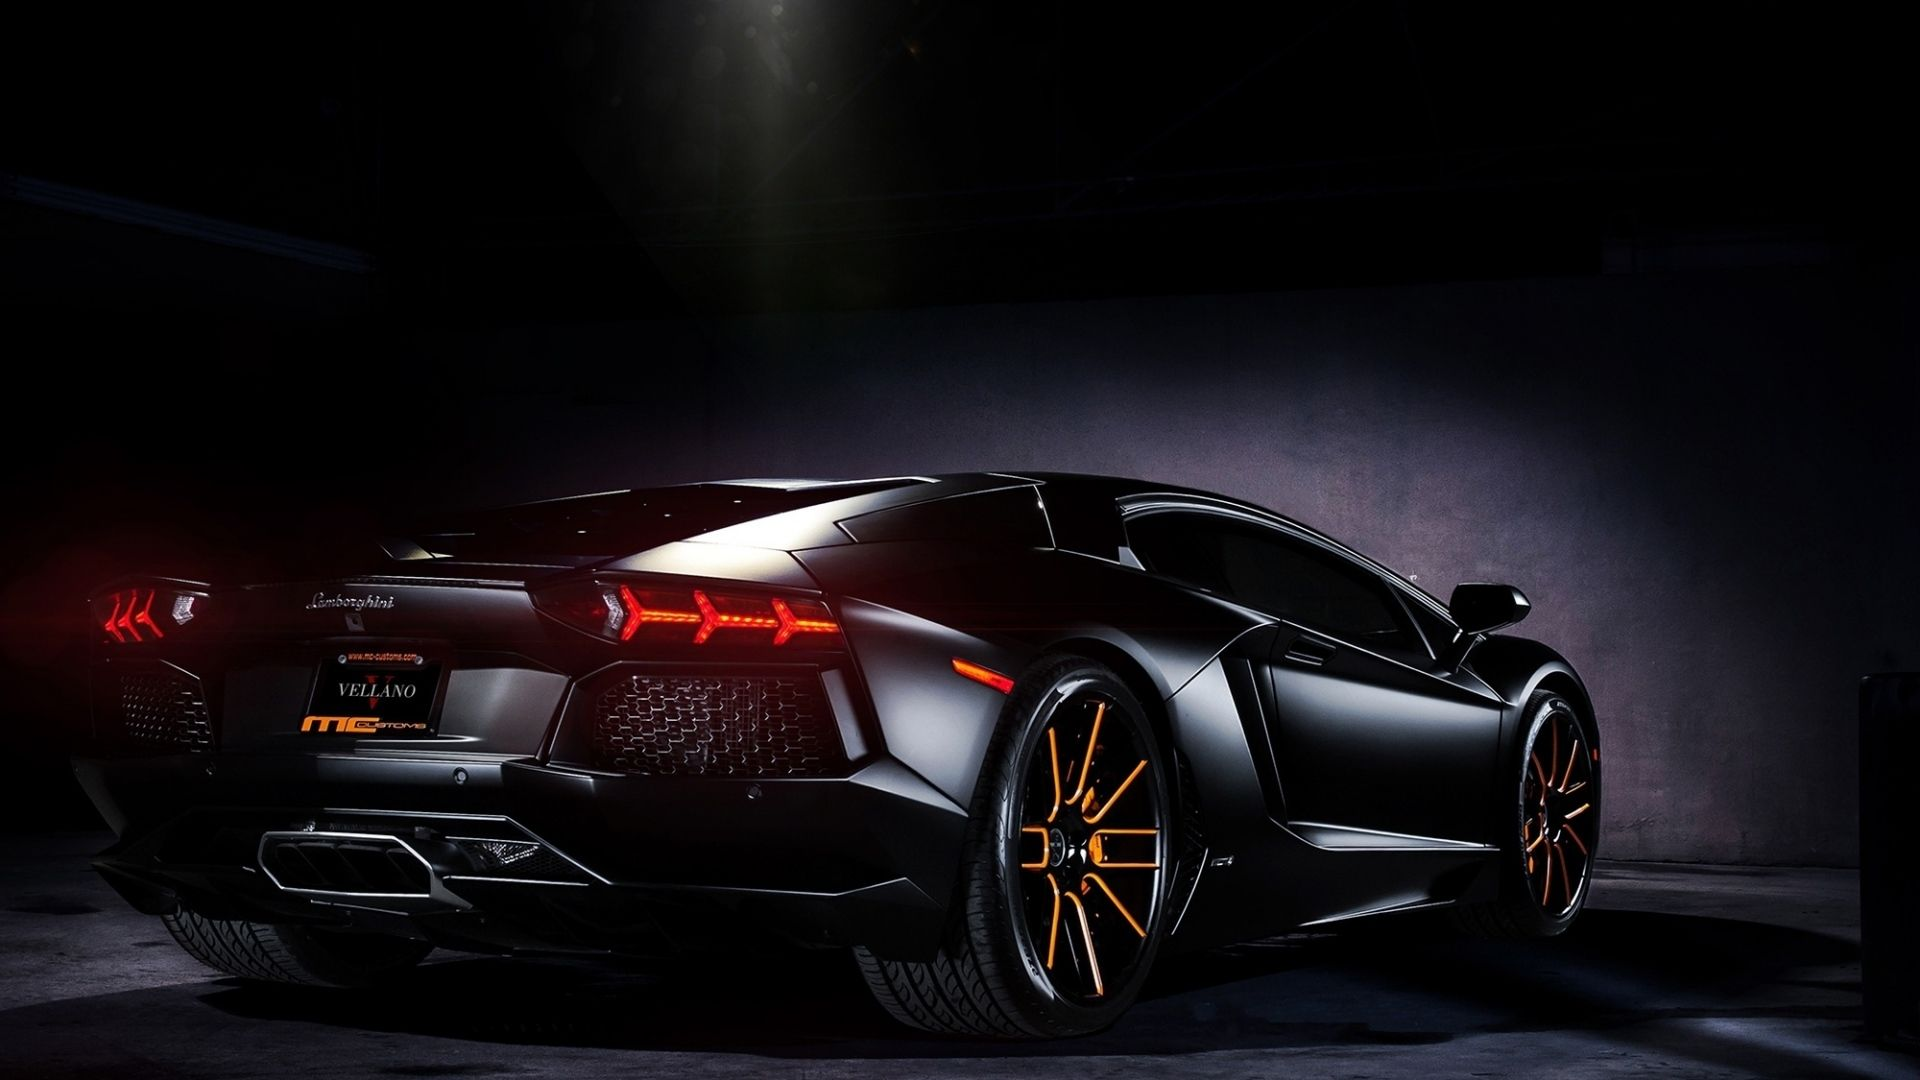 Full Hd 1080p Black Wallpapers Hd Desktop Backgrounds 1920x1080 Lamborghini Aventador Wallpaper Lamborghini Black Hd Wallpaper